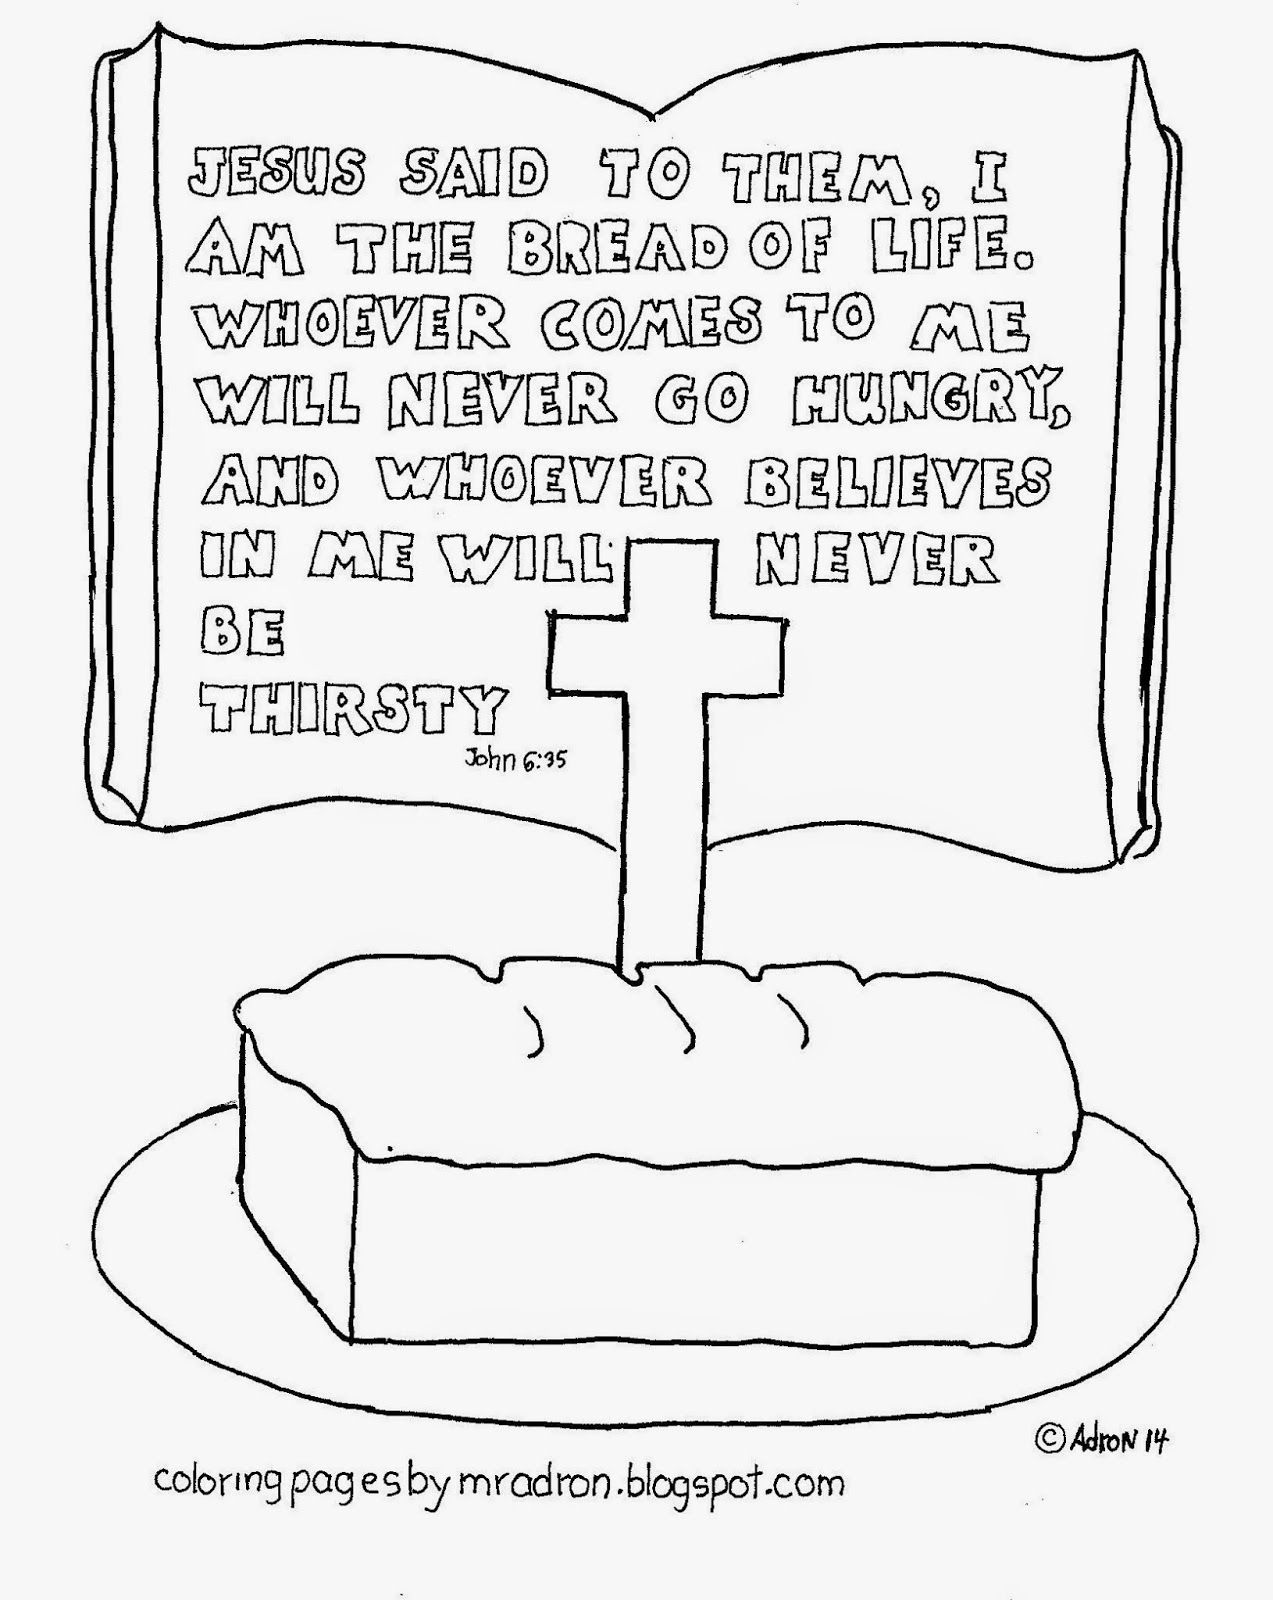 Coloring Pages For Kids By Mr Adron I Am The Bread Of Life Free Coloring Page